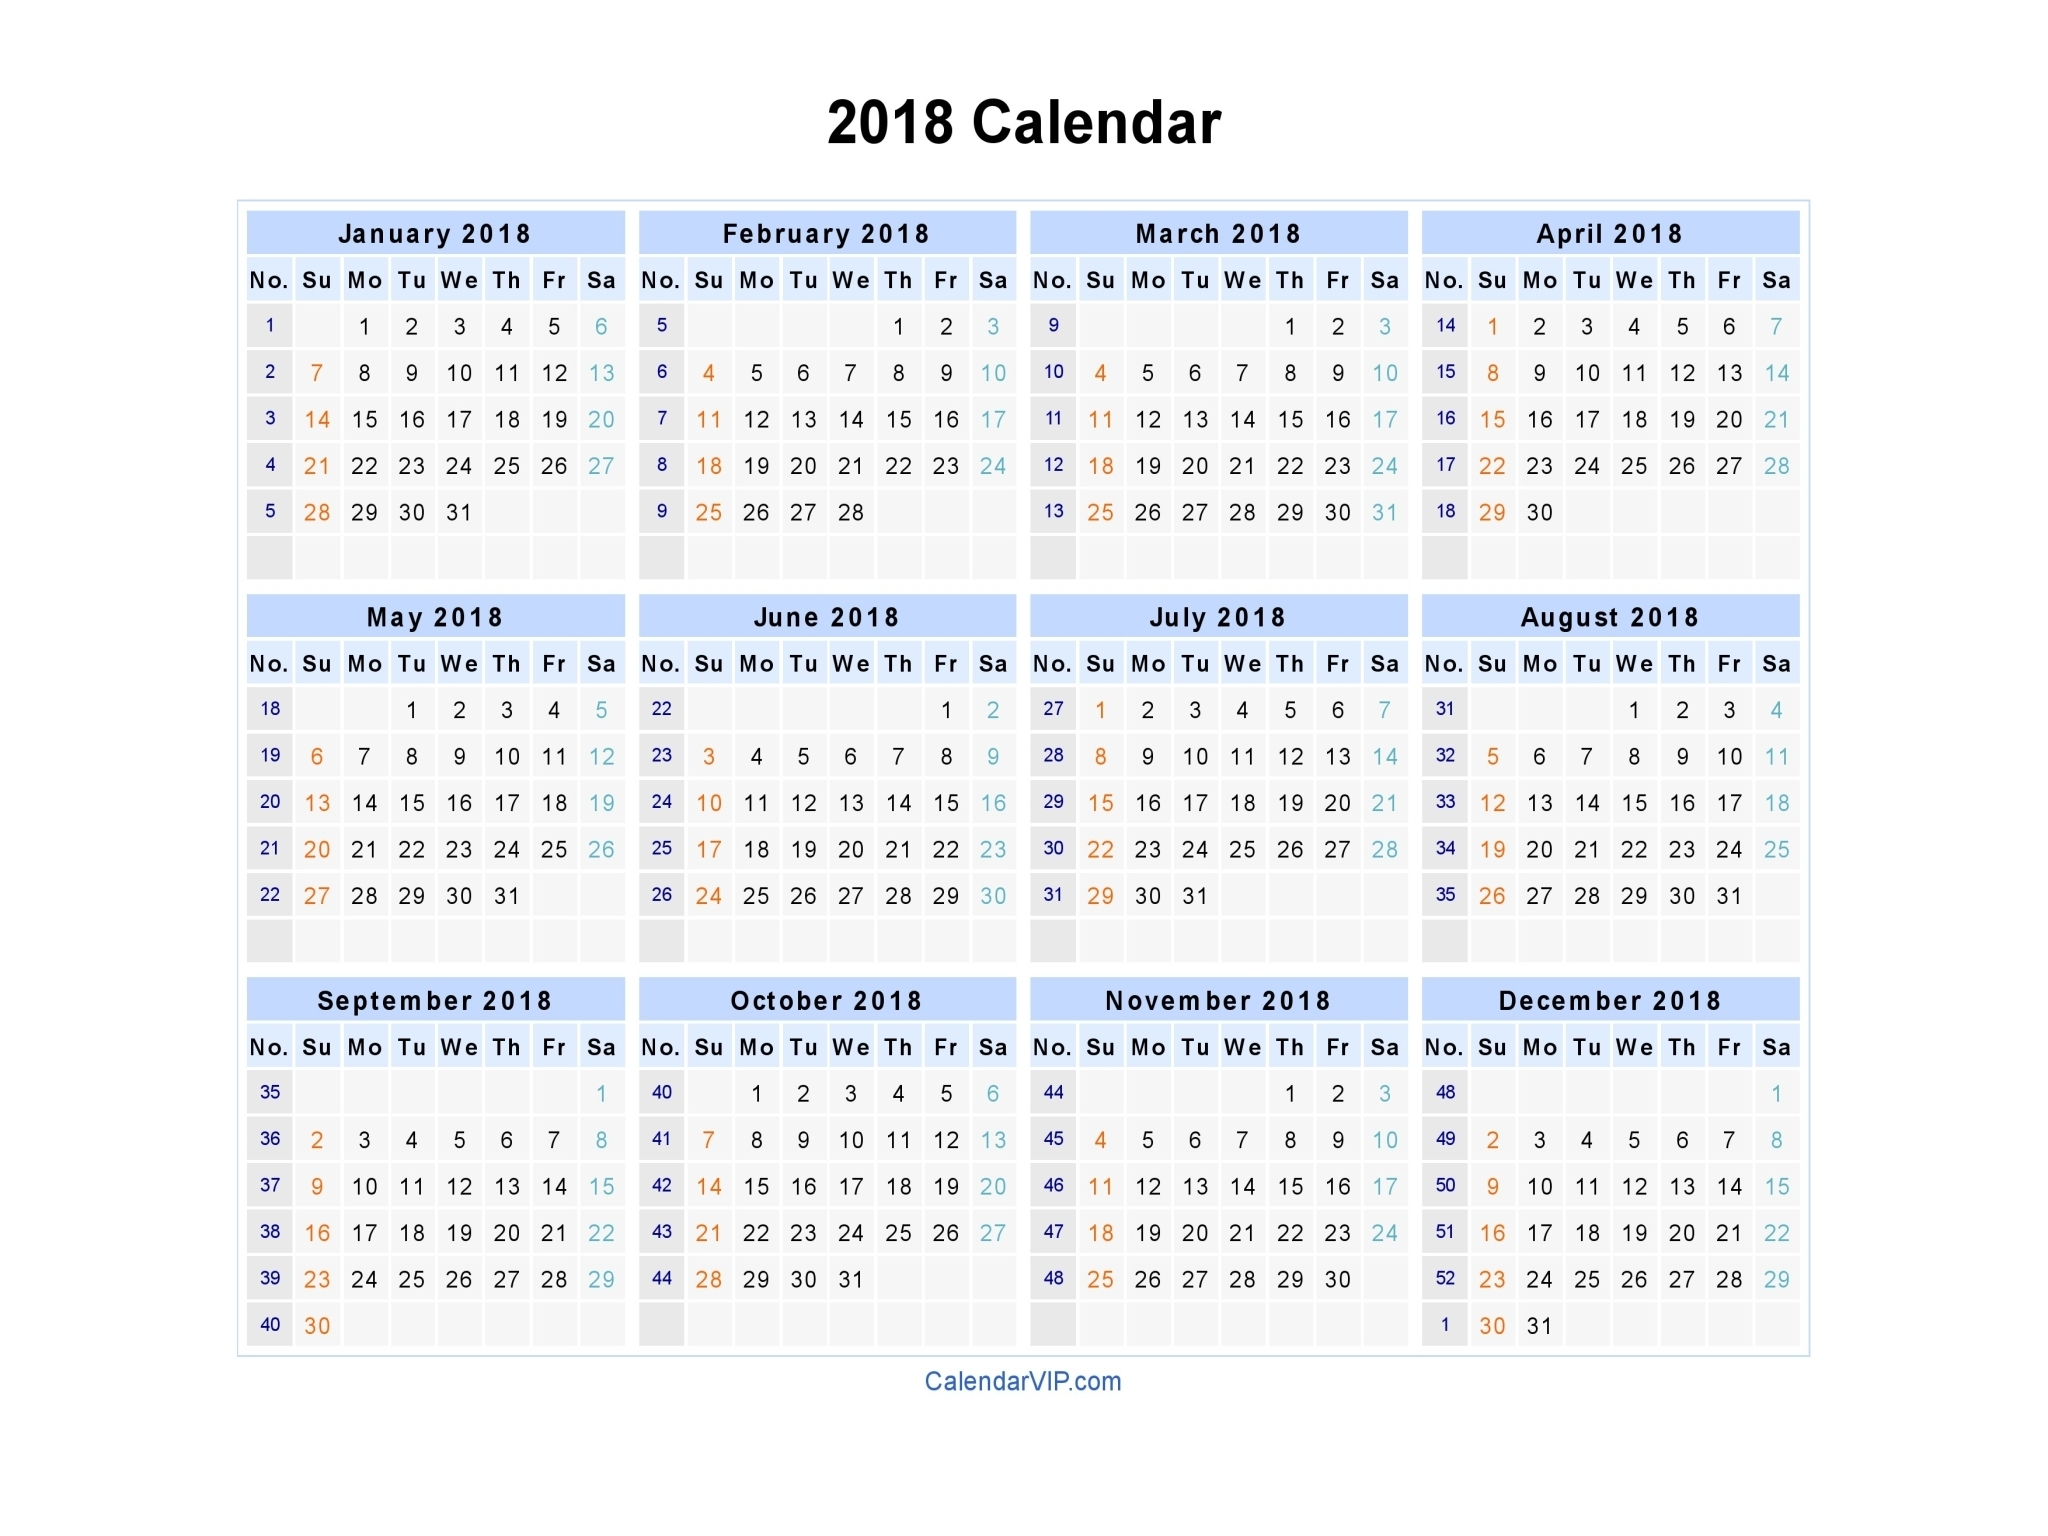 2018 Calendar - Blank Printable Calendar Template In Pdf with 2020 Calendar Weeks Numbered Excel